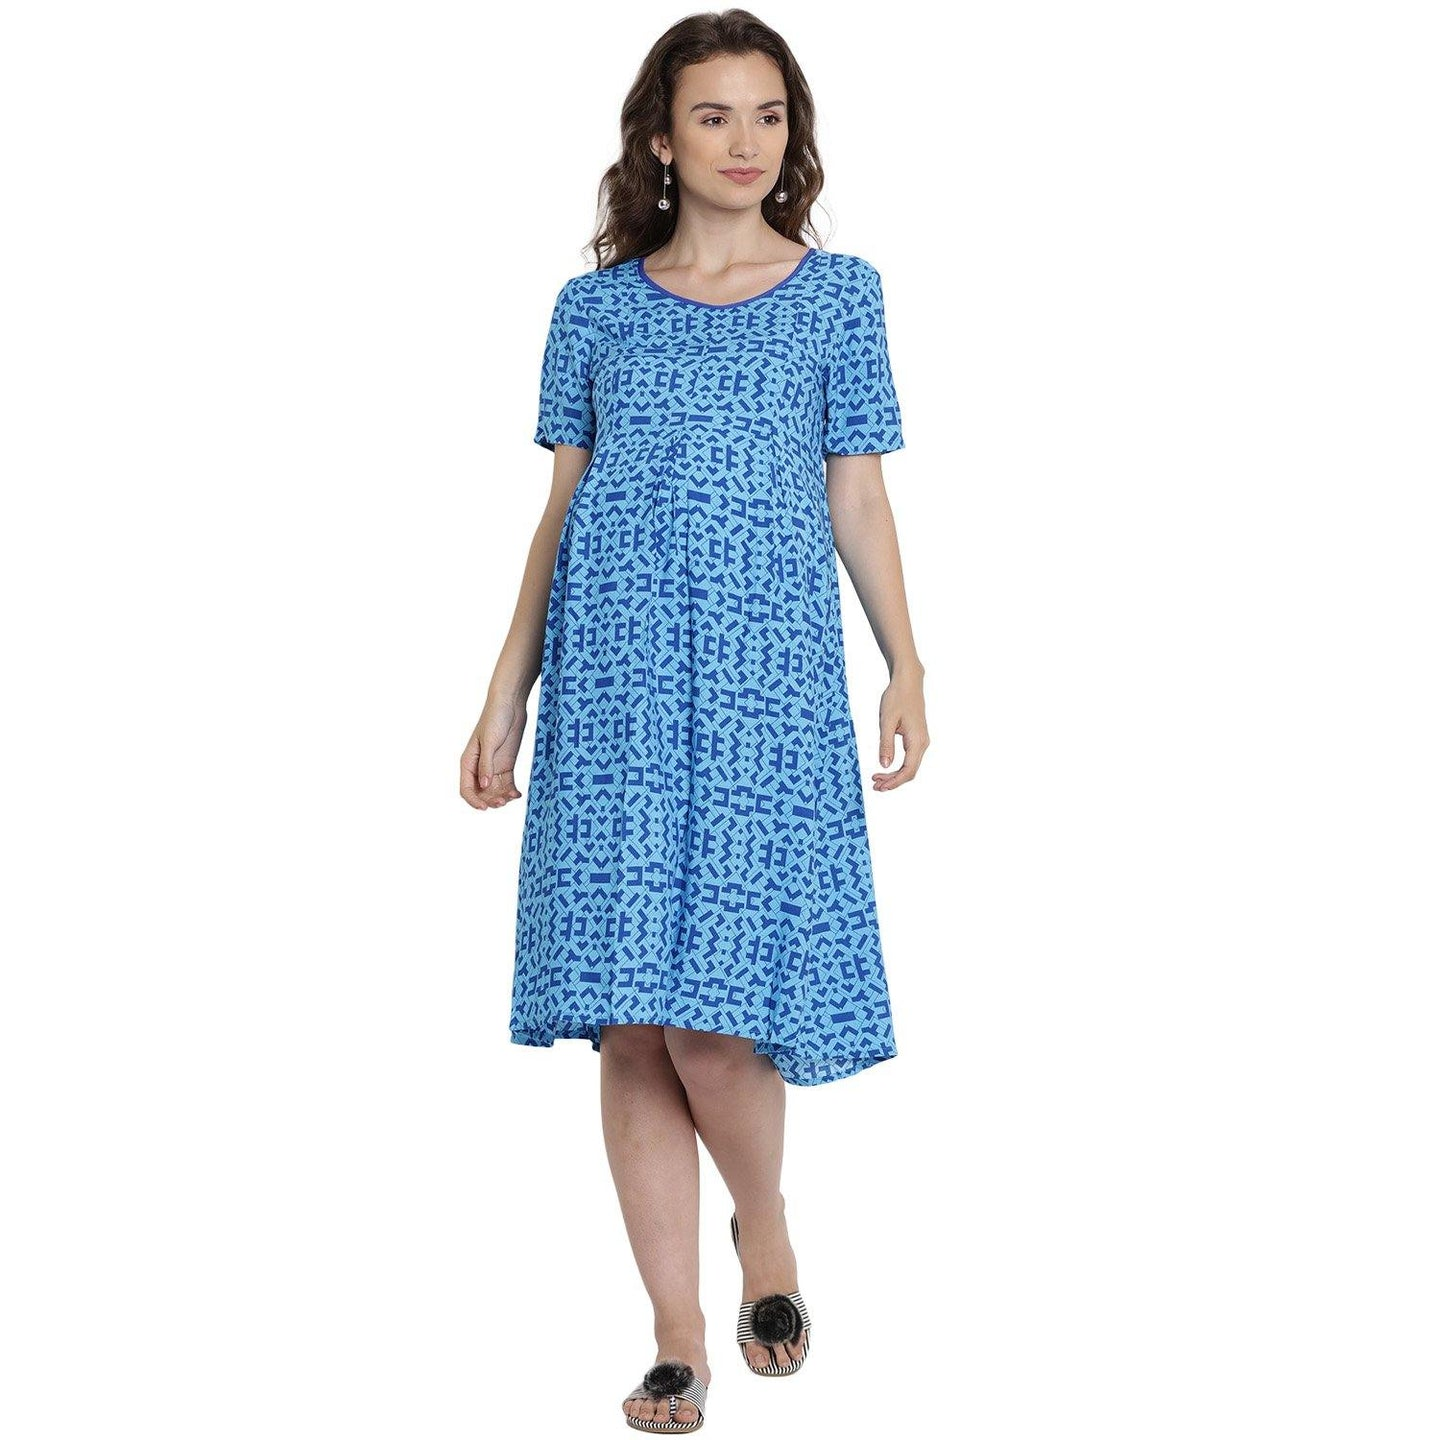 Light Sea Green Midi Maternity Dress Made of Rayon- Mine4Nine